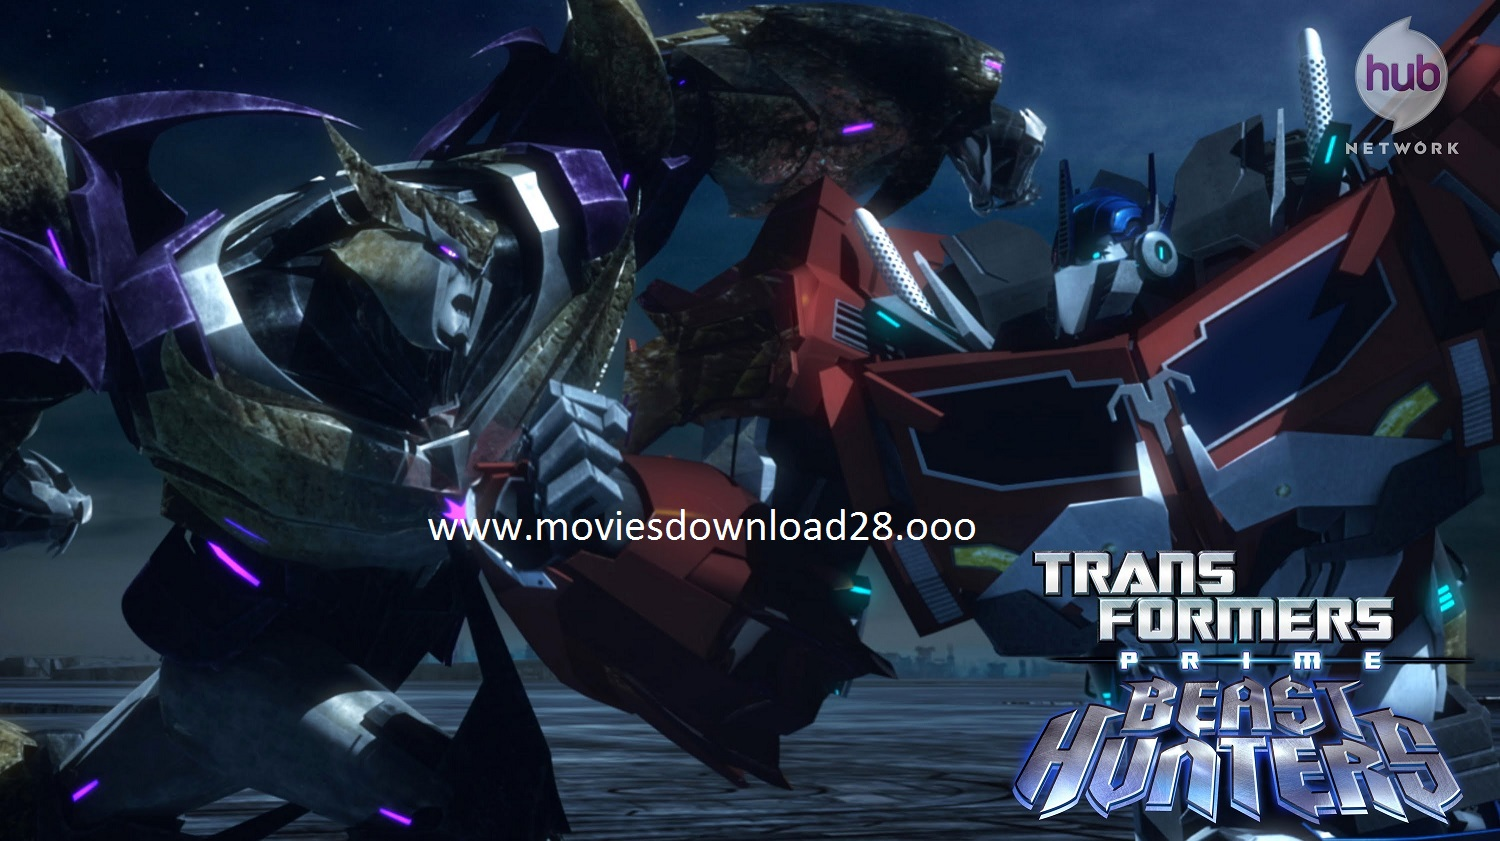 transformers 3 full movie download in hindi hd